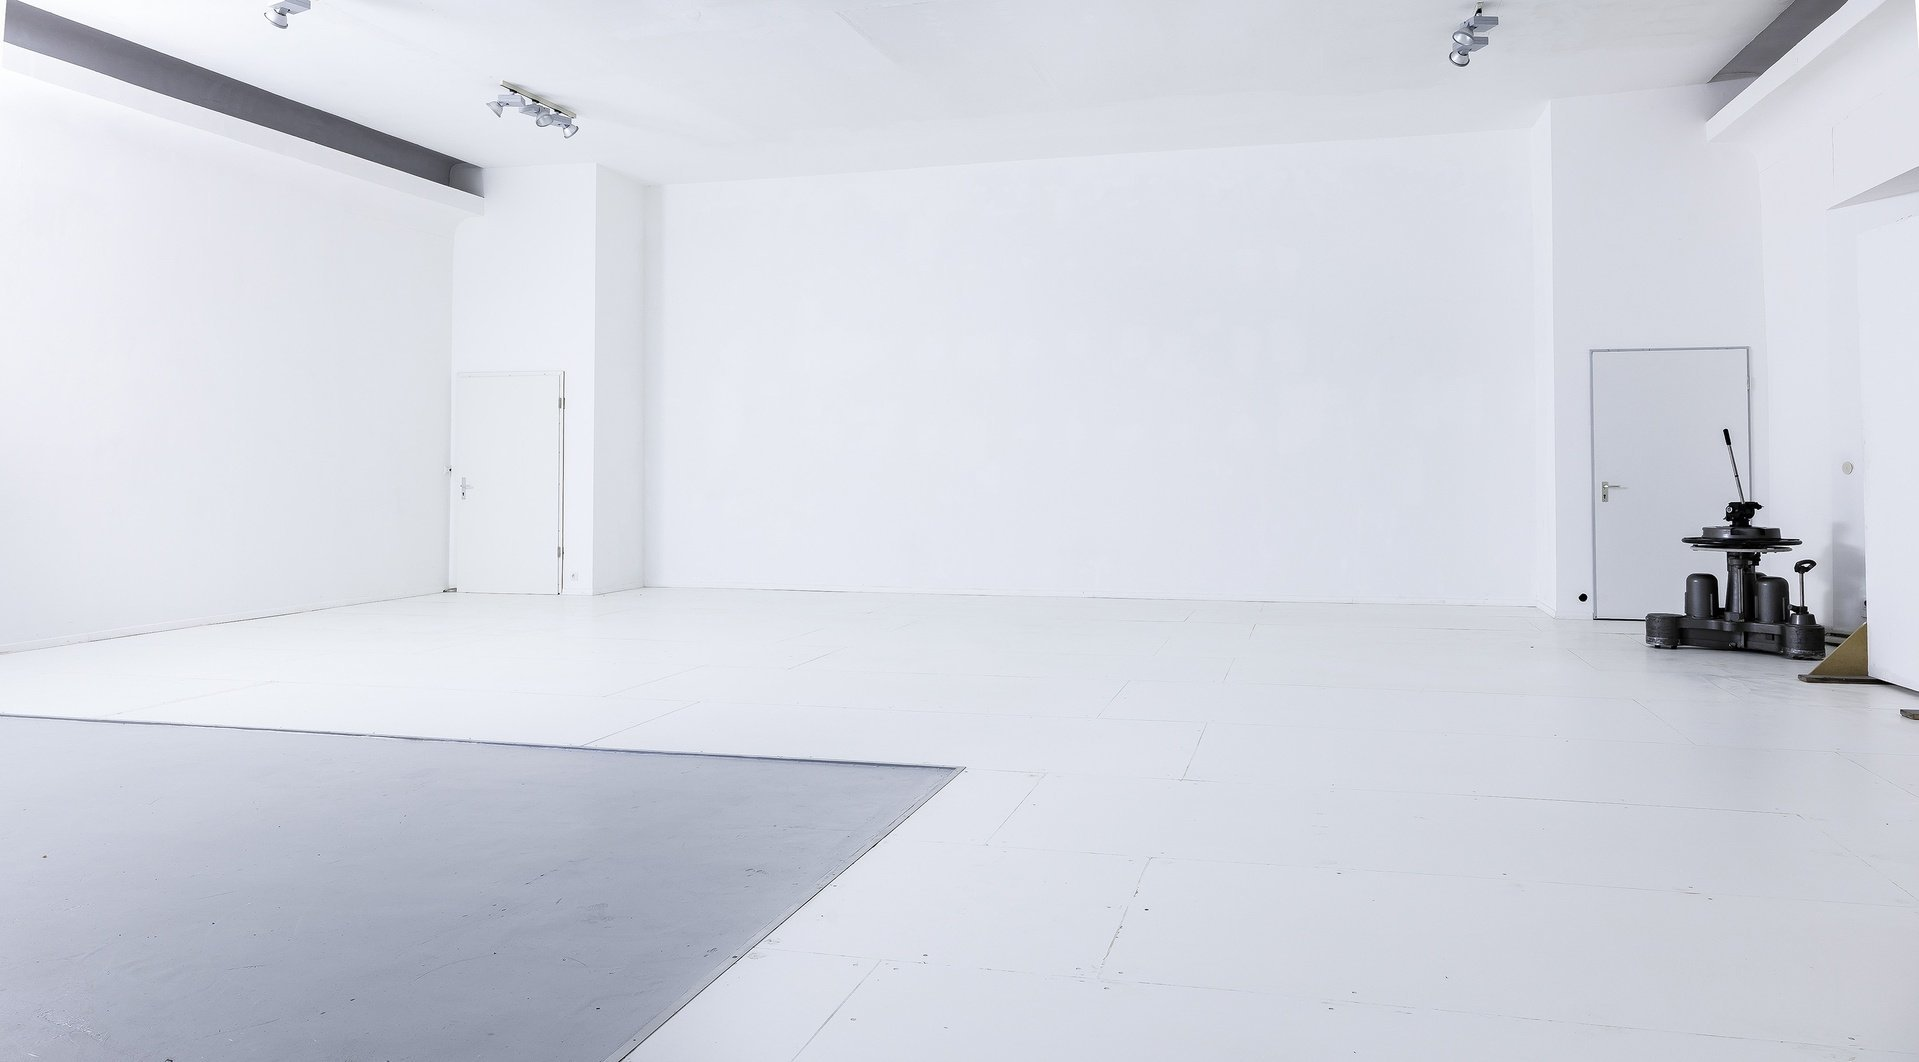 Hamburg workshop spaces Photography studio Studio229 image 0